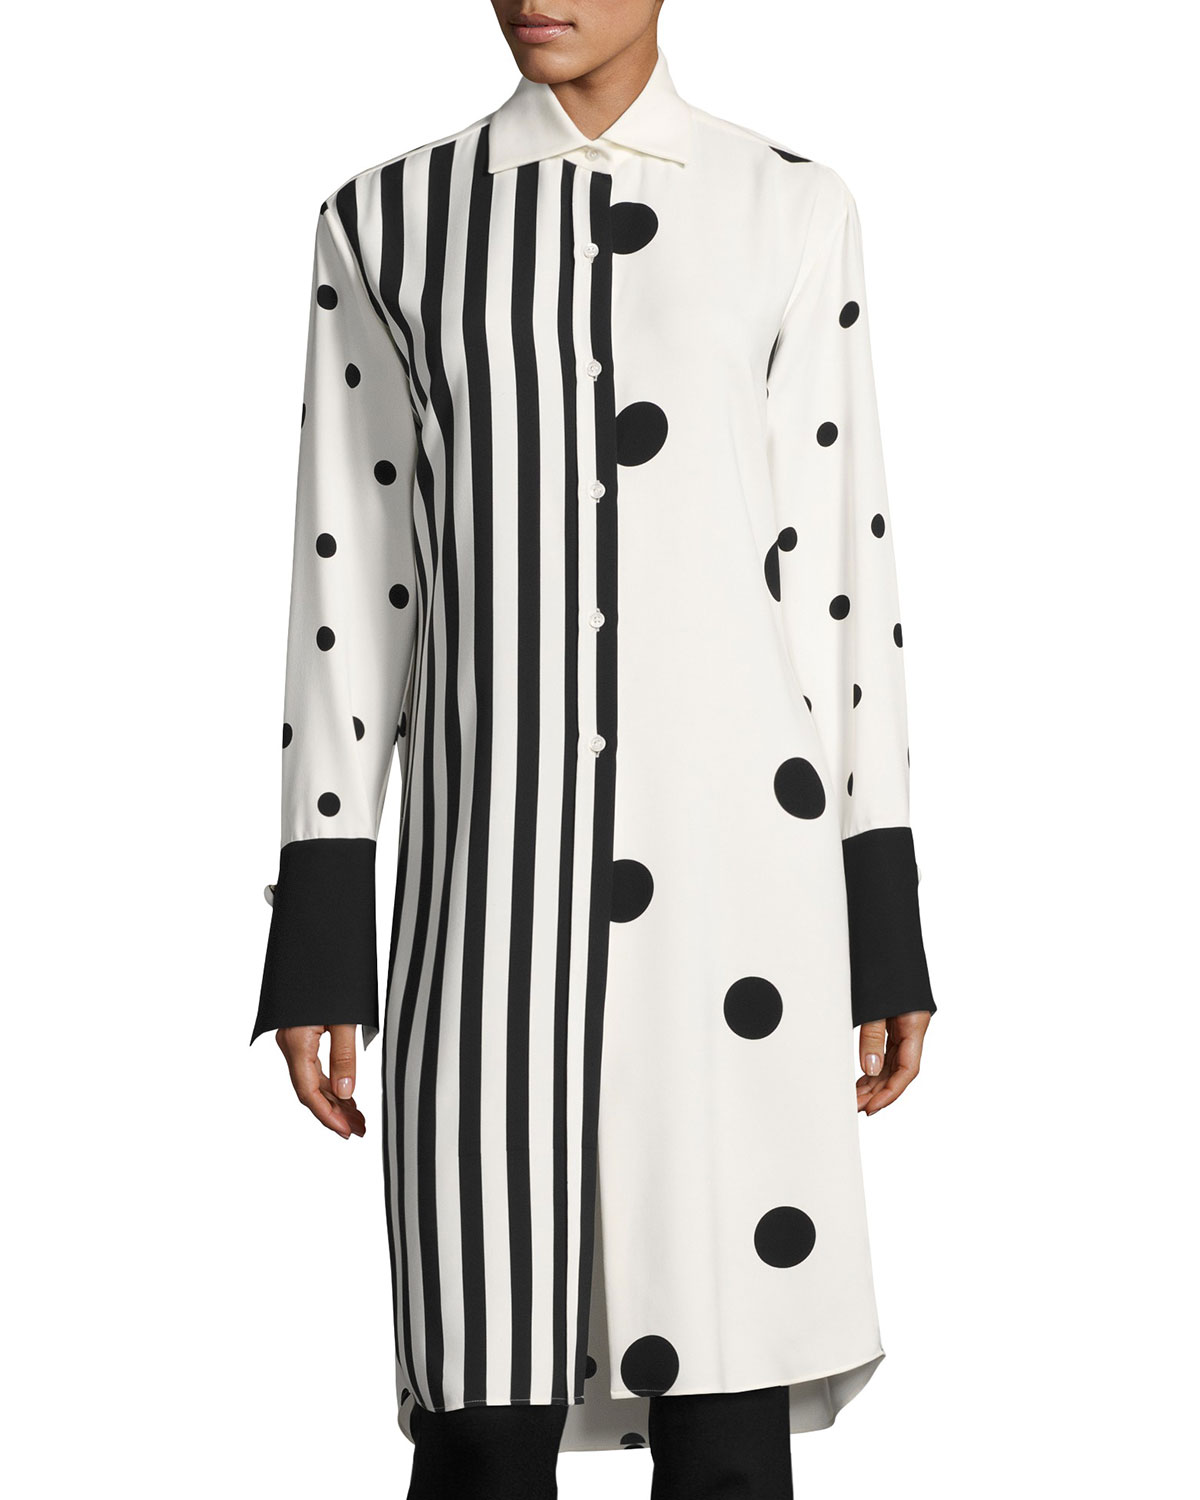 c7e4445a485b Monse Striped & Polka-Dot Long-Sleeve Tunic, White/Black | Neiman Marcus